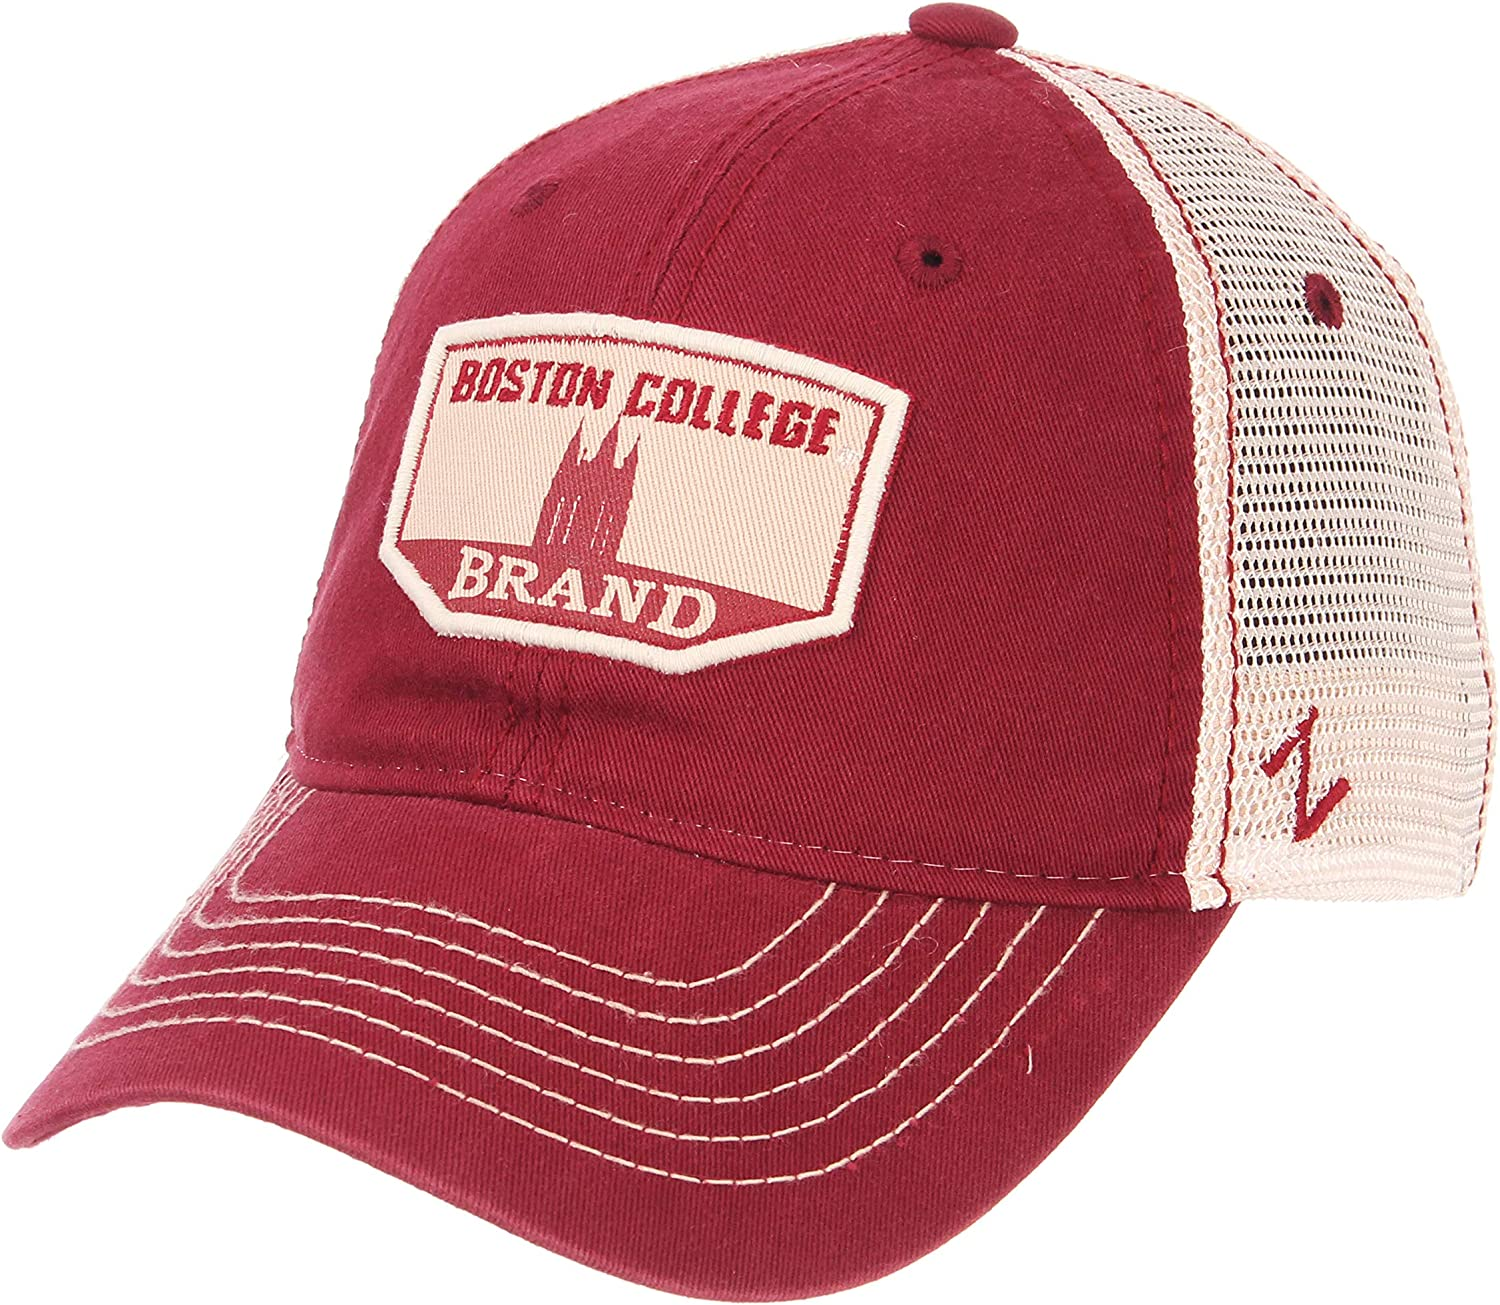 Washed Team//White NCAA Zephyr Boston College Eagles mens Trademark Relaxed Hat Adjustable